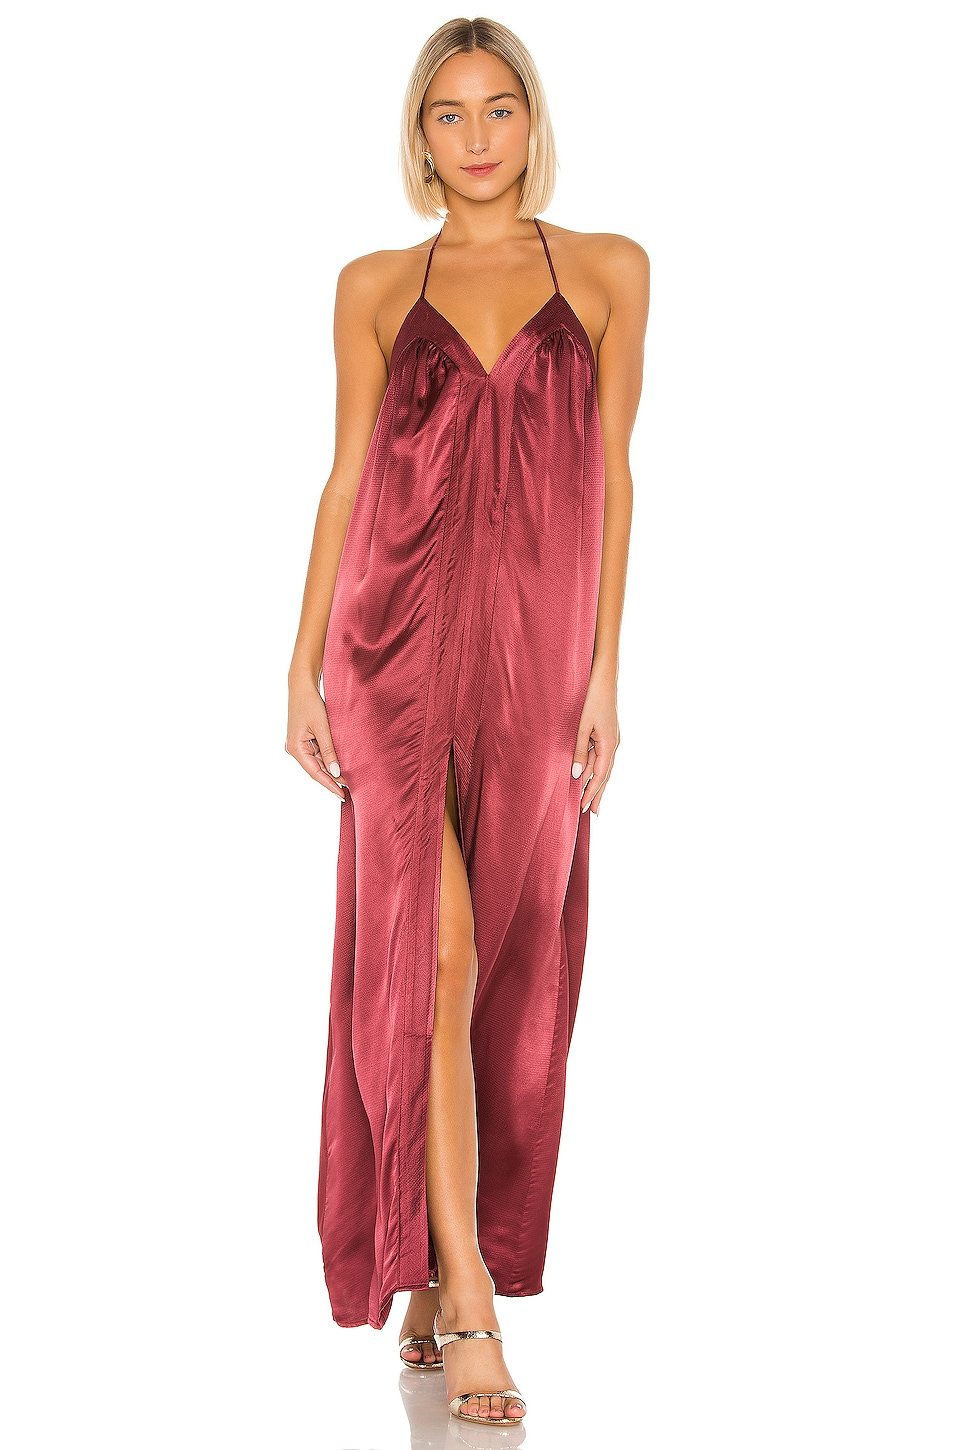 House of Harlow 1960 x REVOLVE Brynn Maxi Dress in Currant